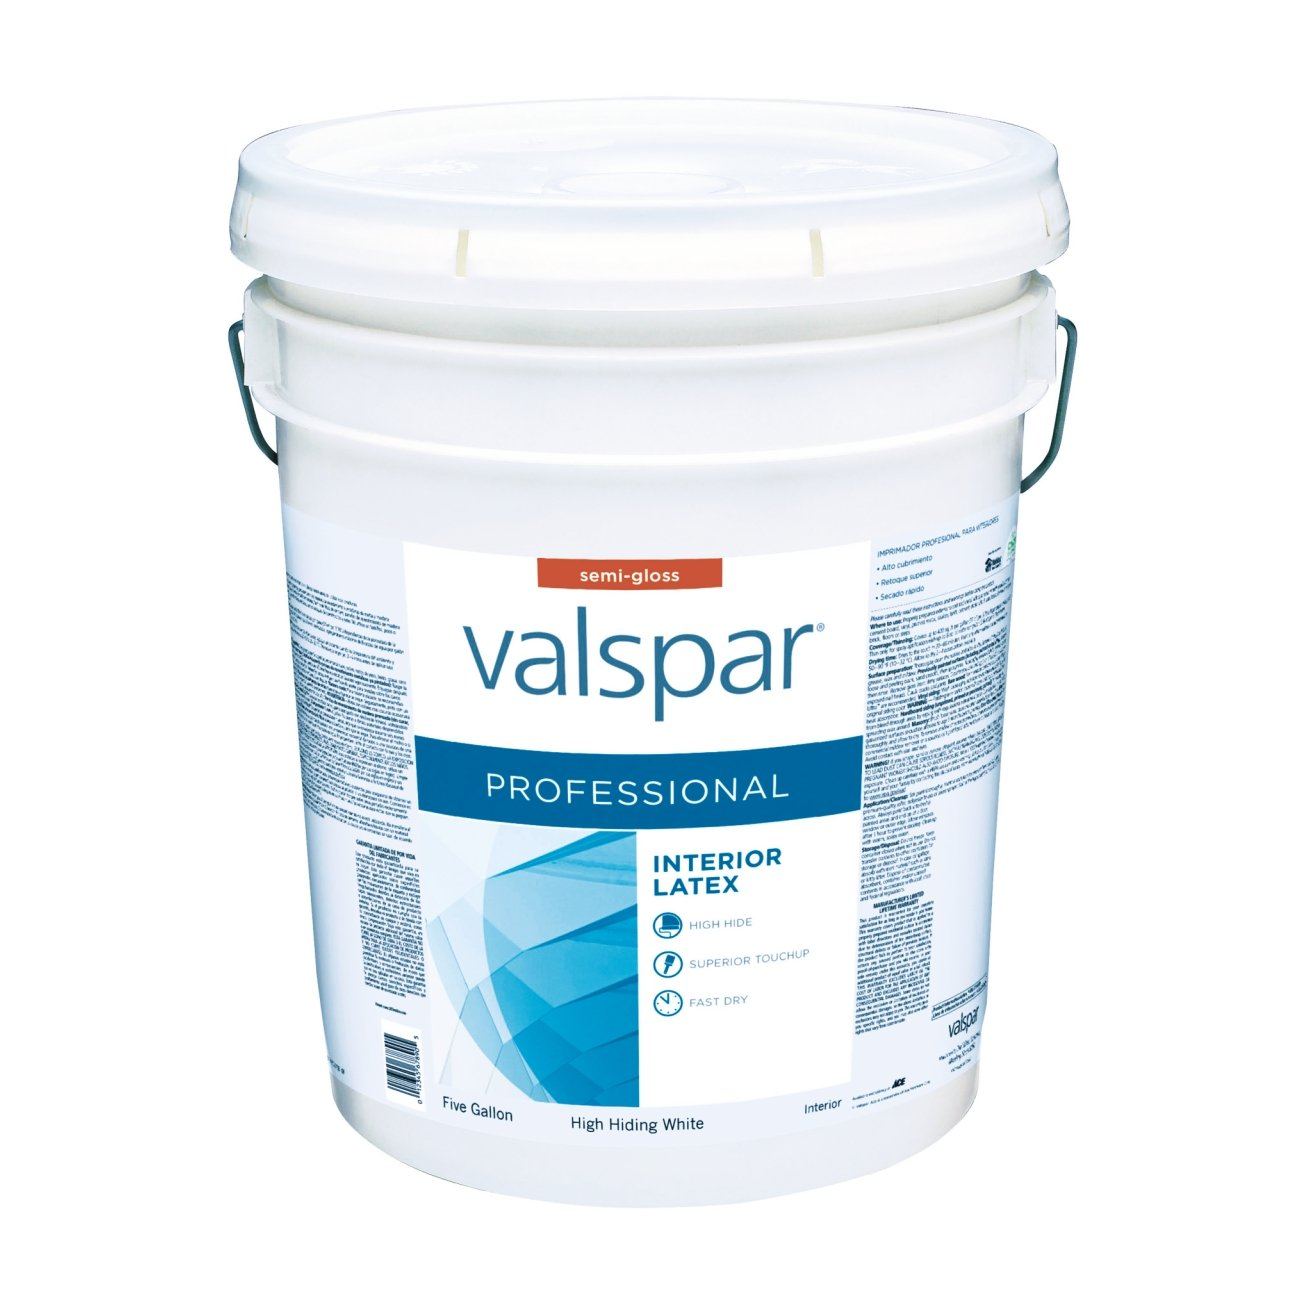 Valspar Paint Interior Semi Gloss High Hiding White 5 Gl - Household Paints And Stains - Amazon.com